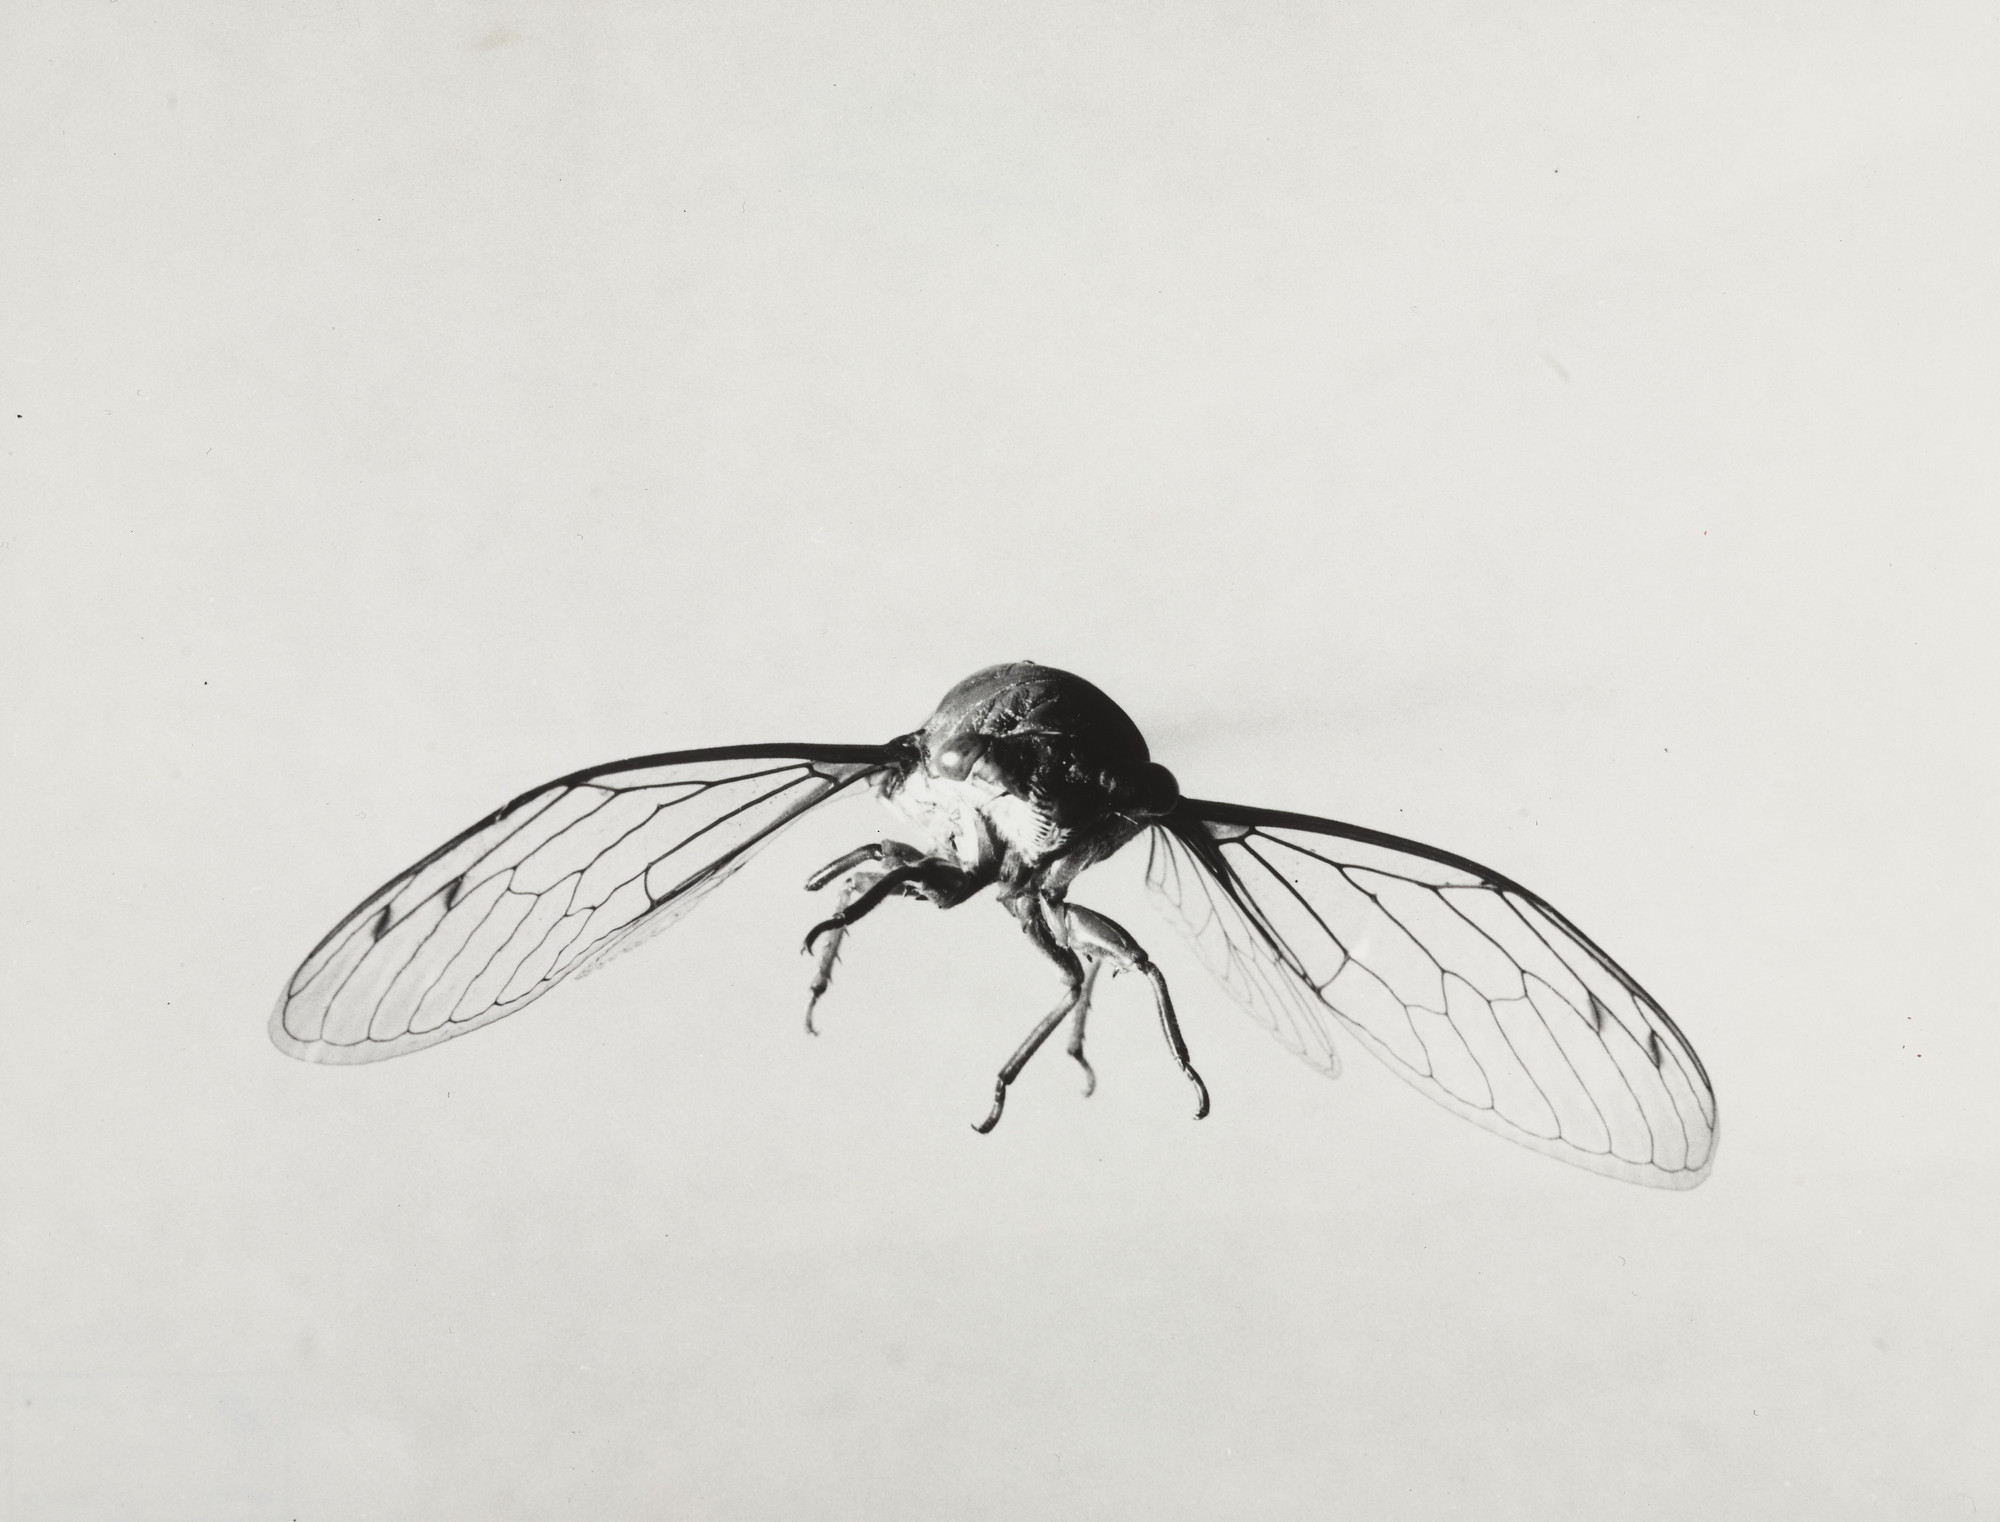 Dr. Harold E. Edgerton. Cicada. 1939 or before